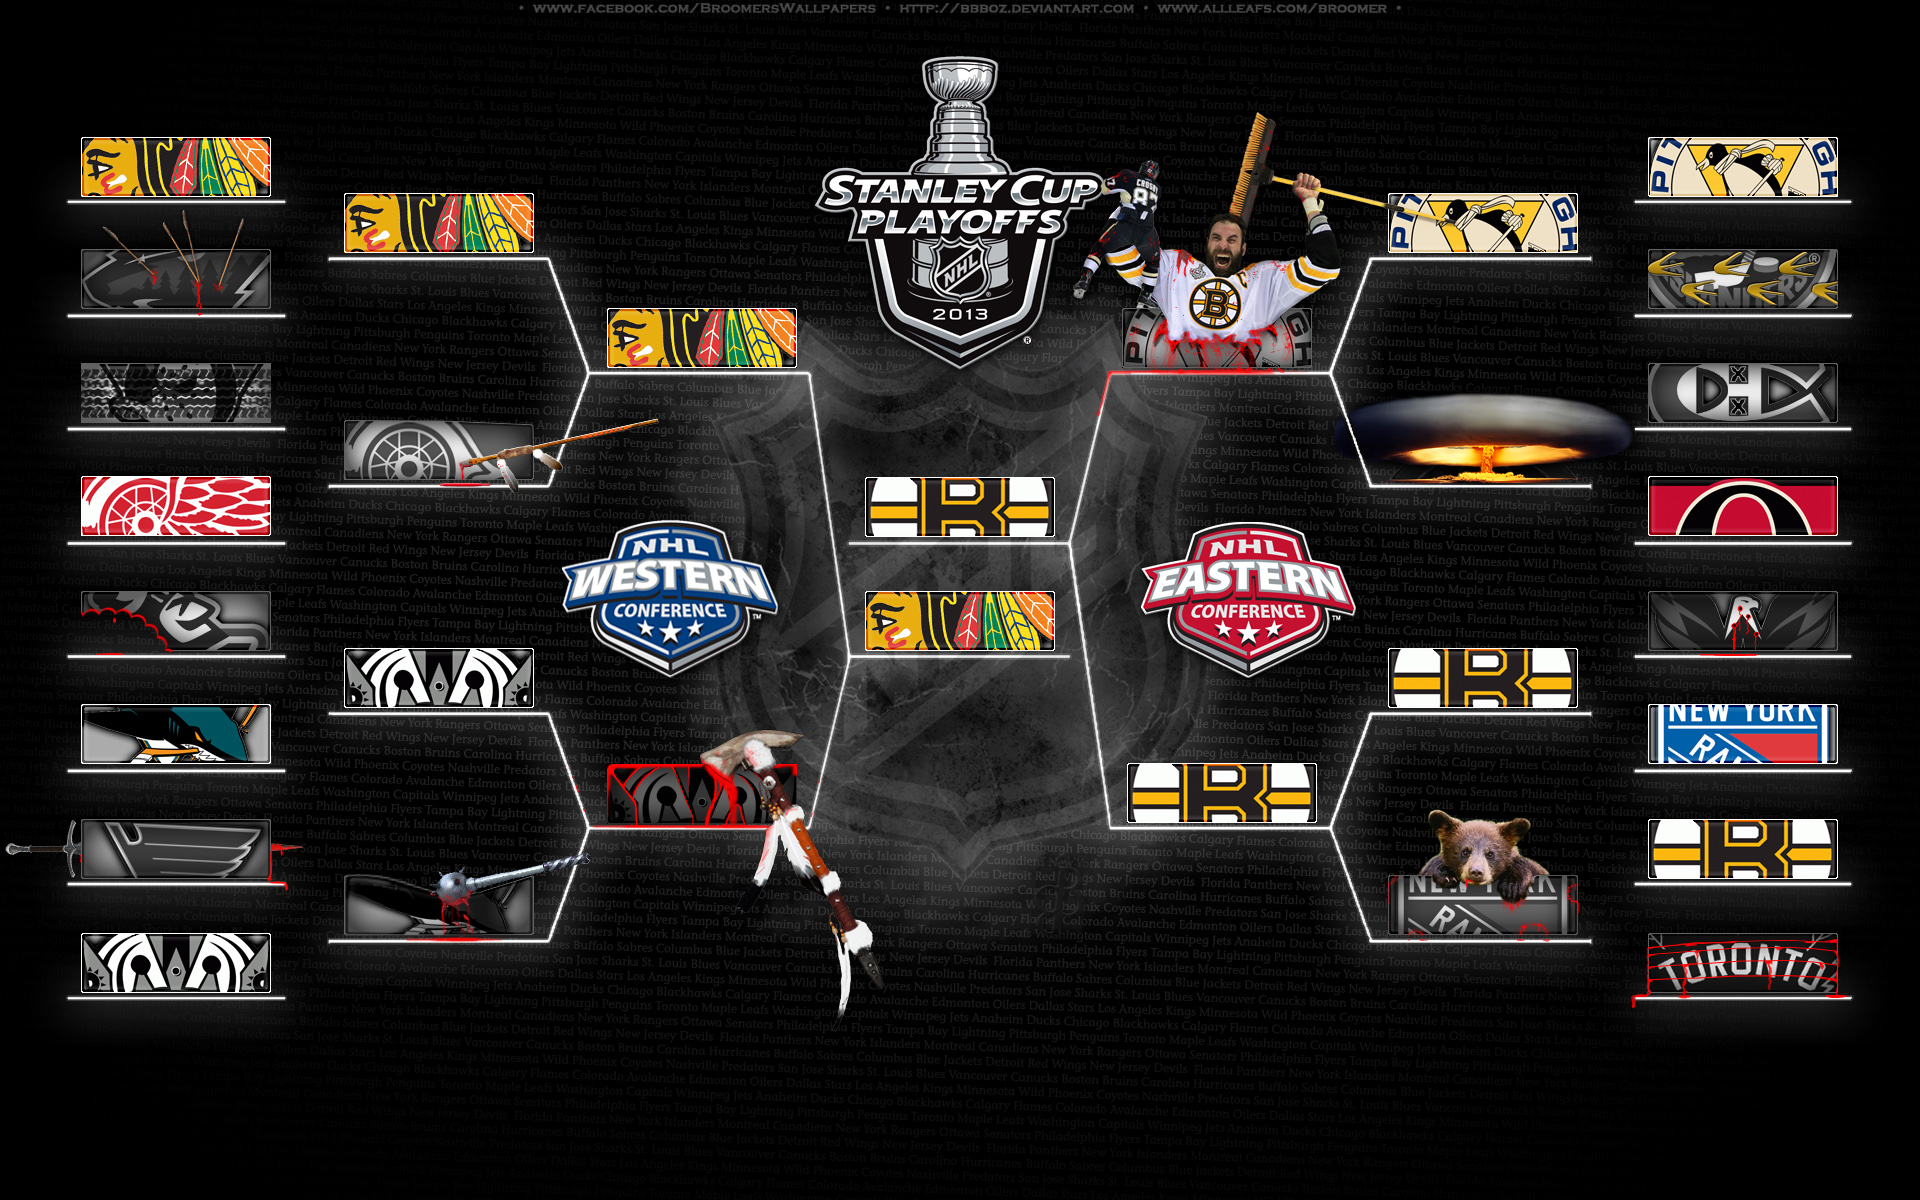 Nhl Playoffs 2013 Bracket | www.pixshark.com - Images Galleries With A Bite!